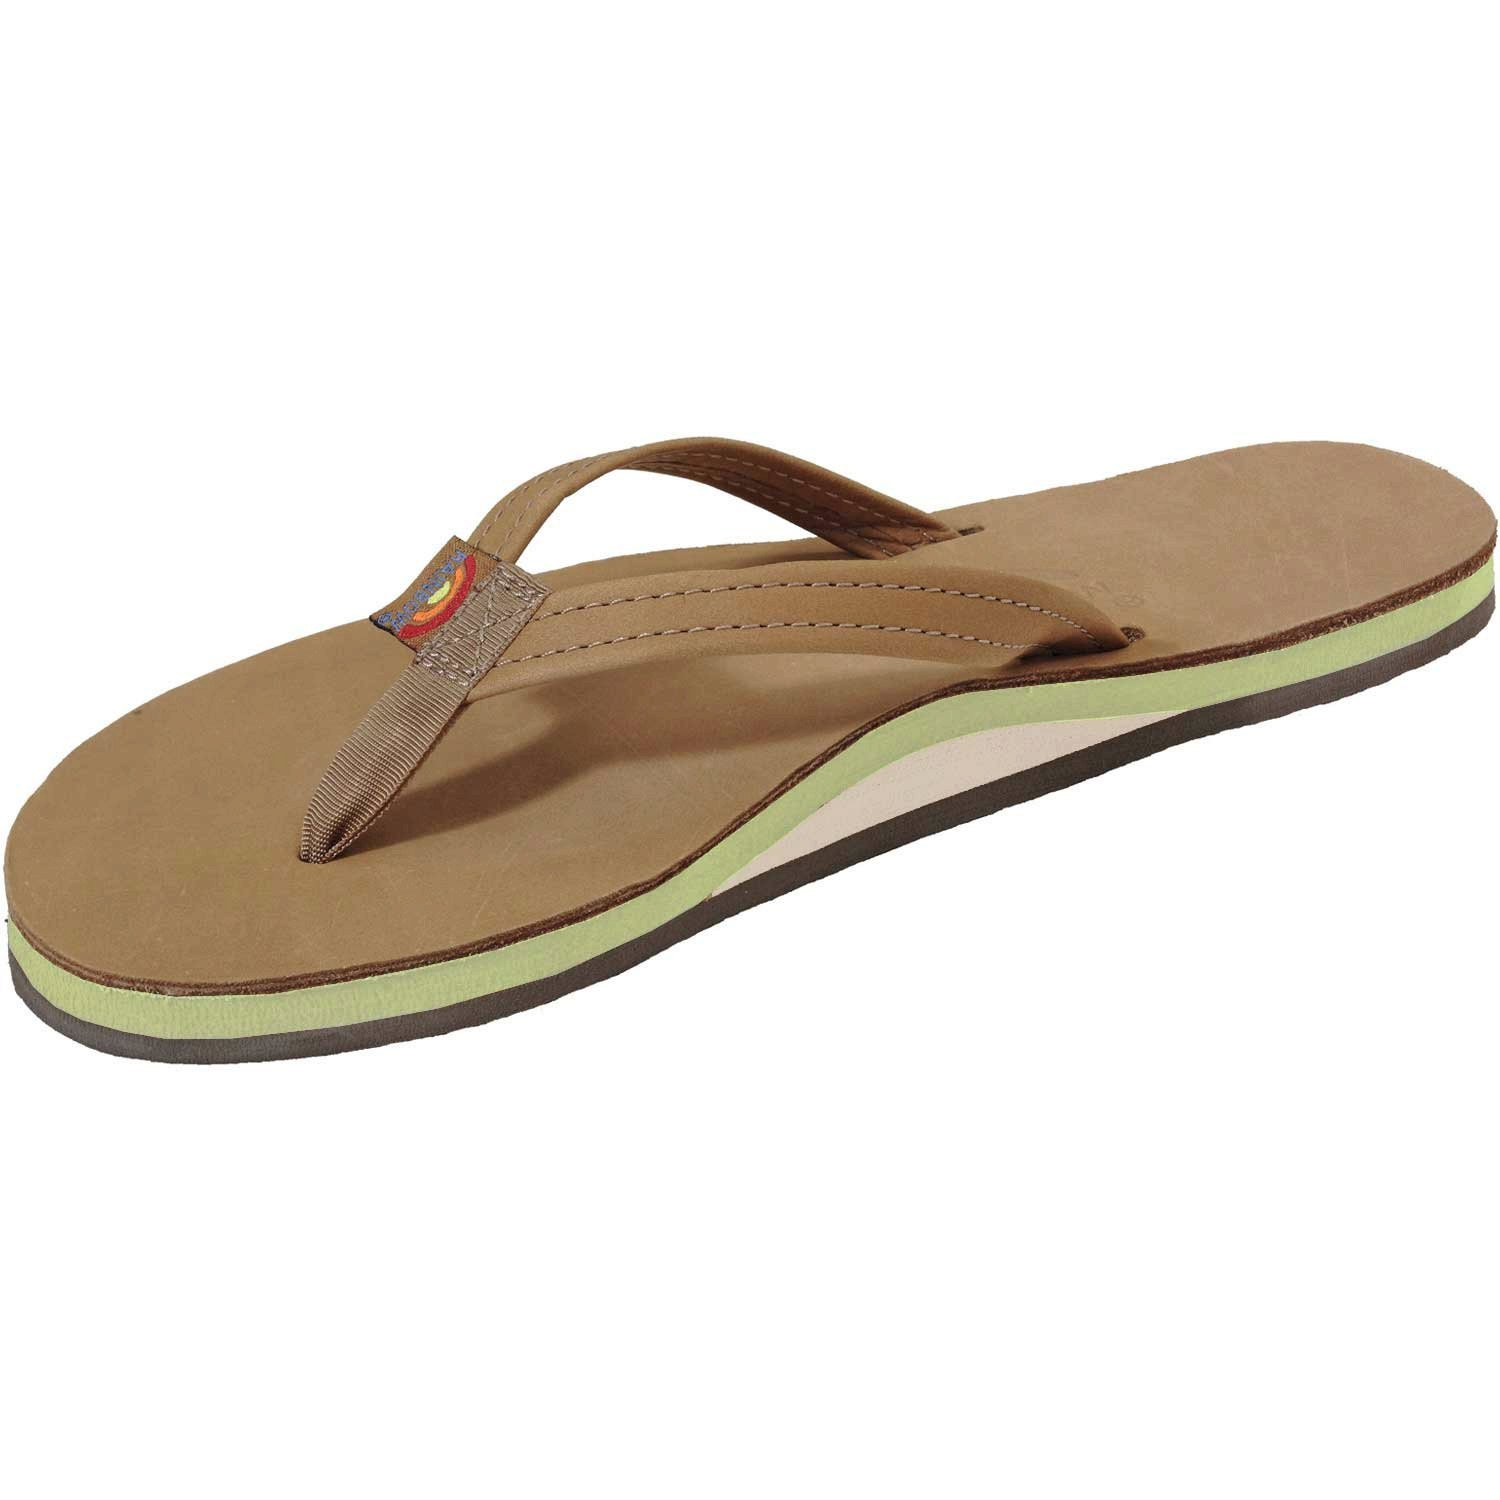 ab4fe7eb73f5 Get Quotations · Rainbow Sandals Women s Sierra Leather Single Arch Lime  Colored Midsole Large ...